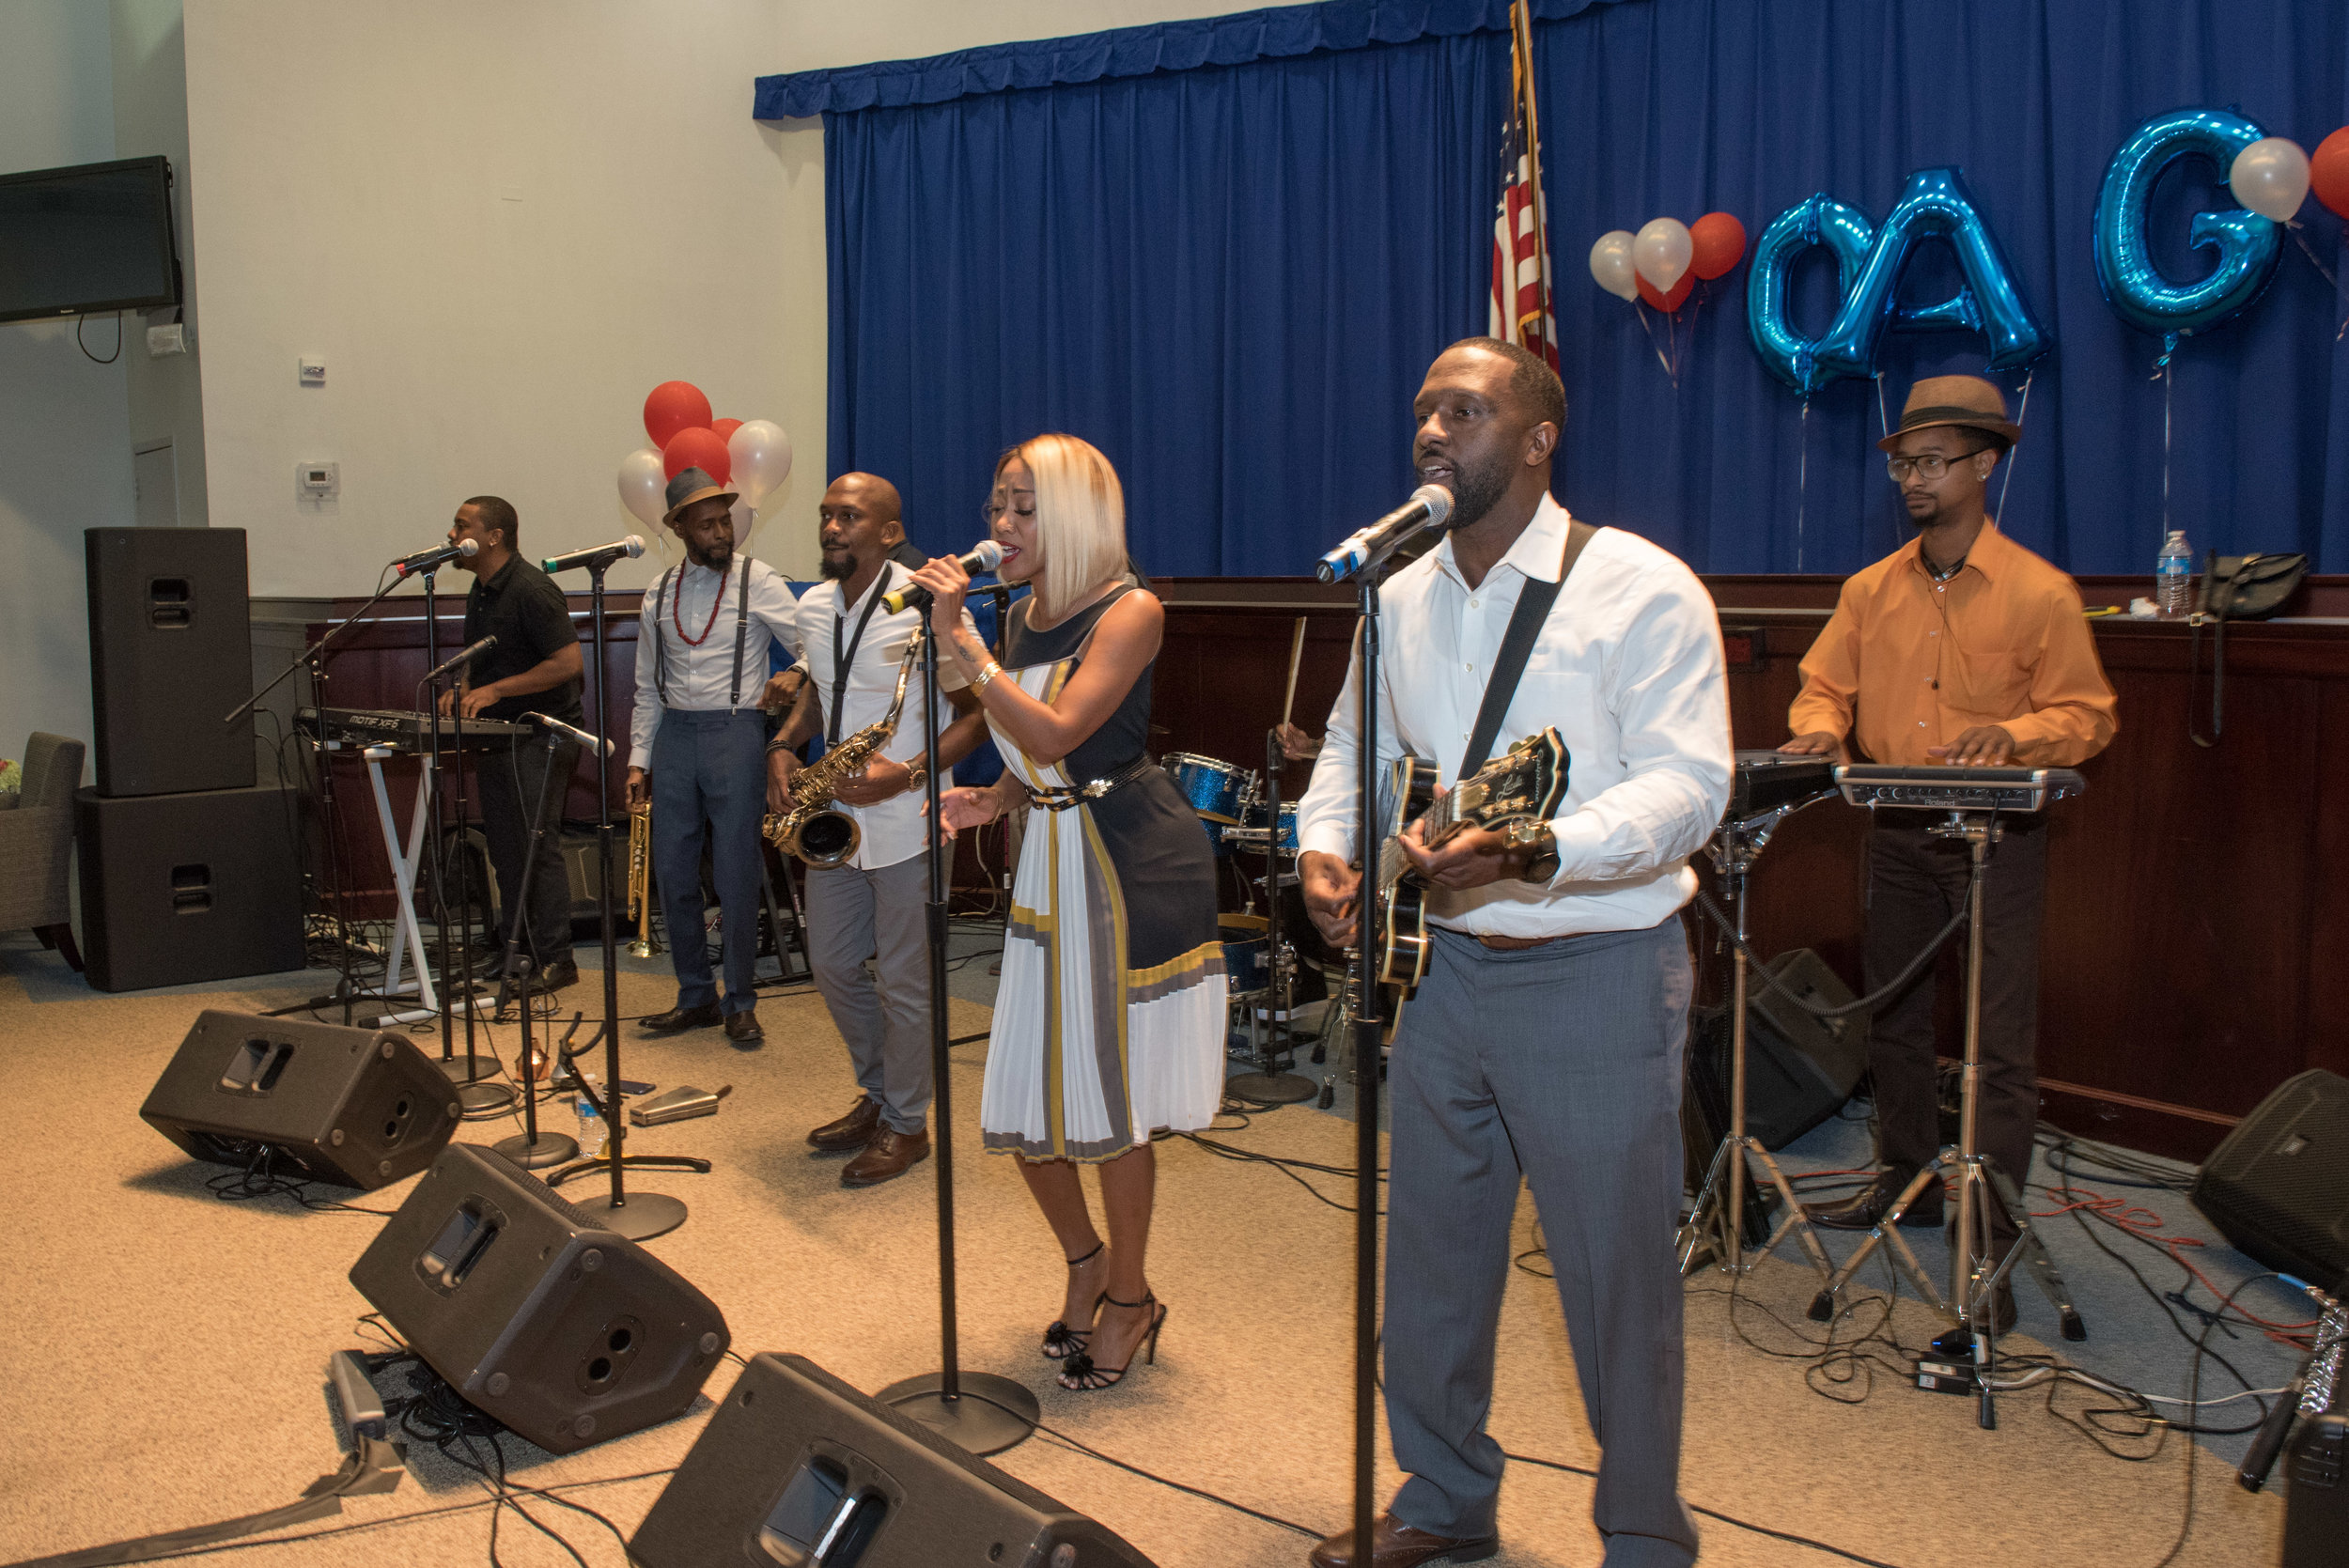 band at oag event.jpg